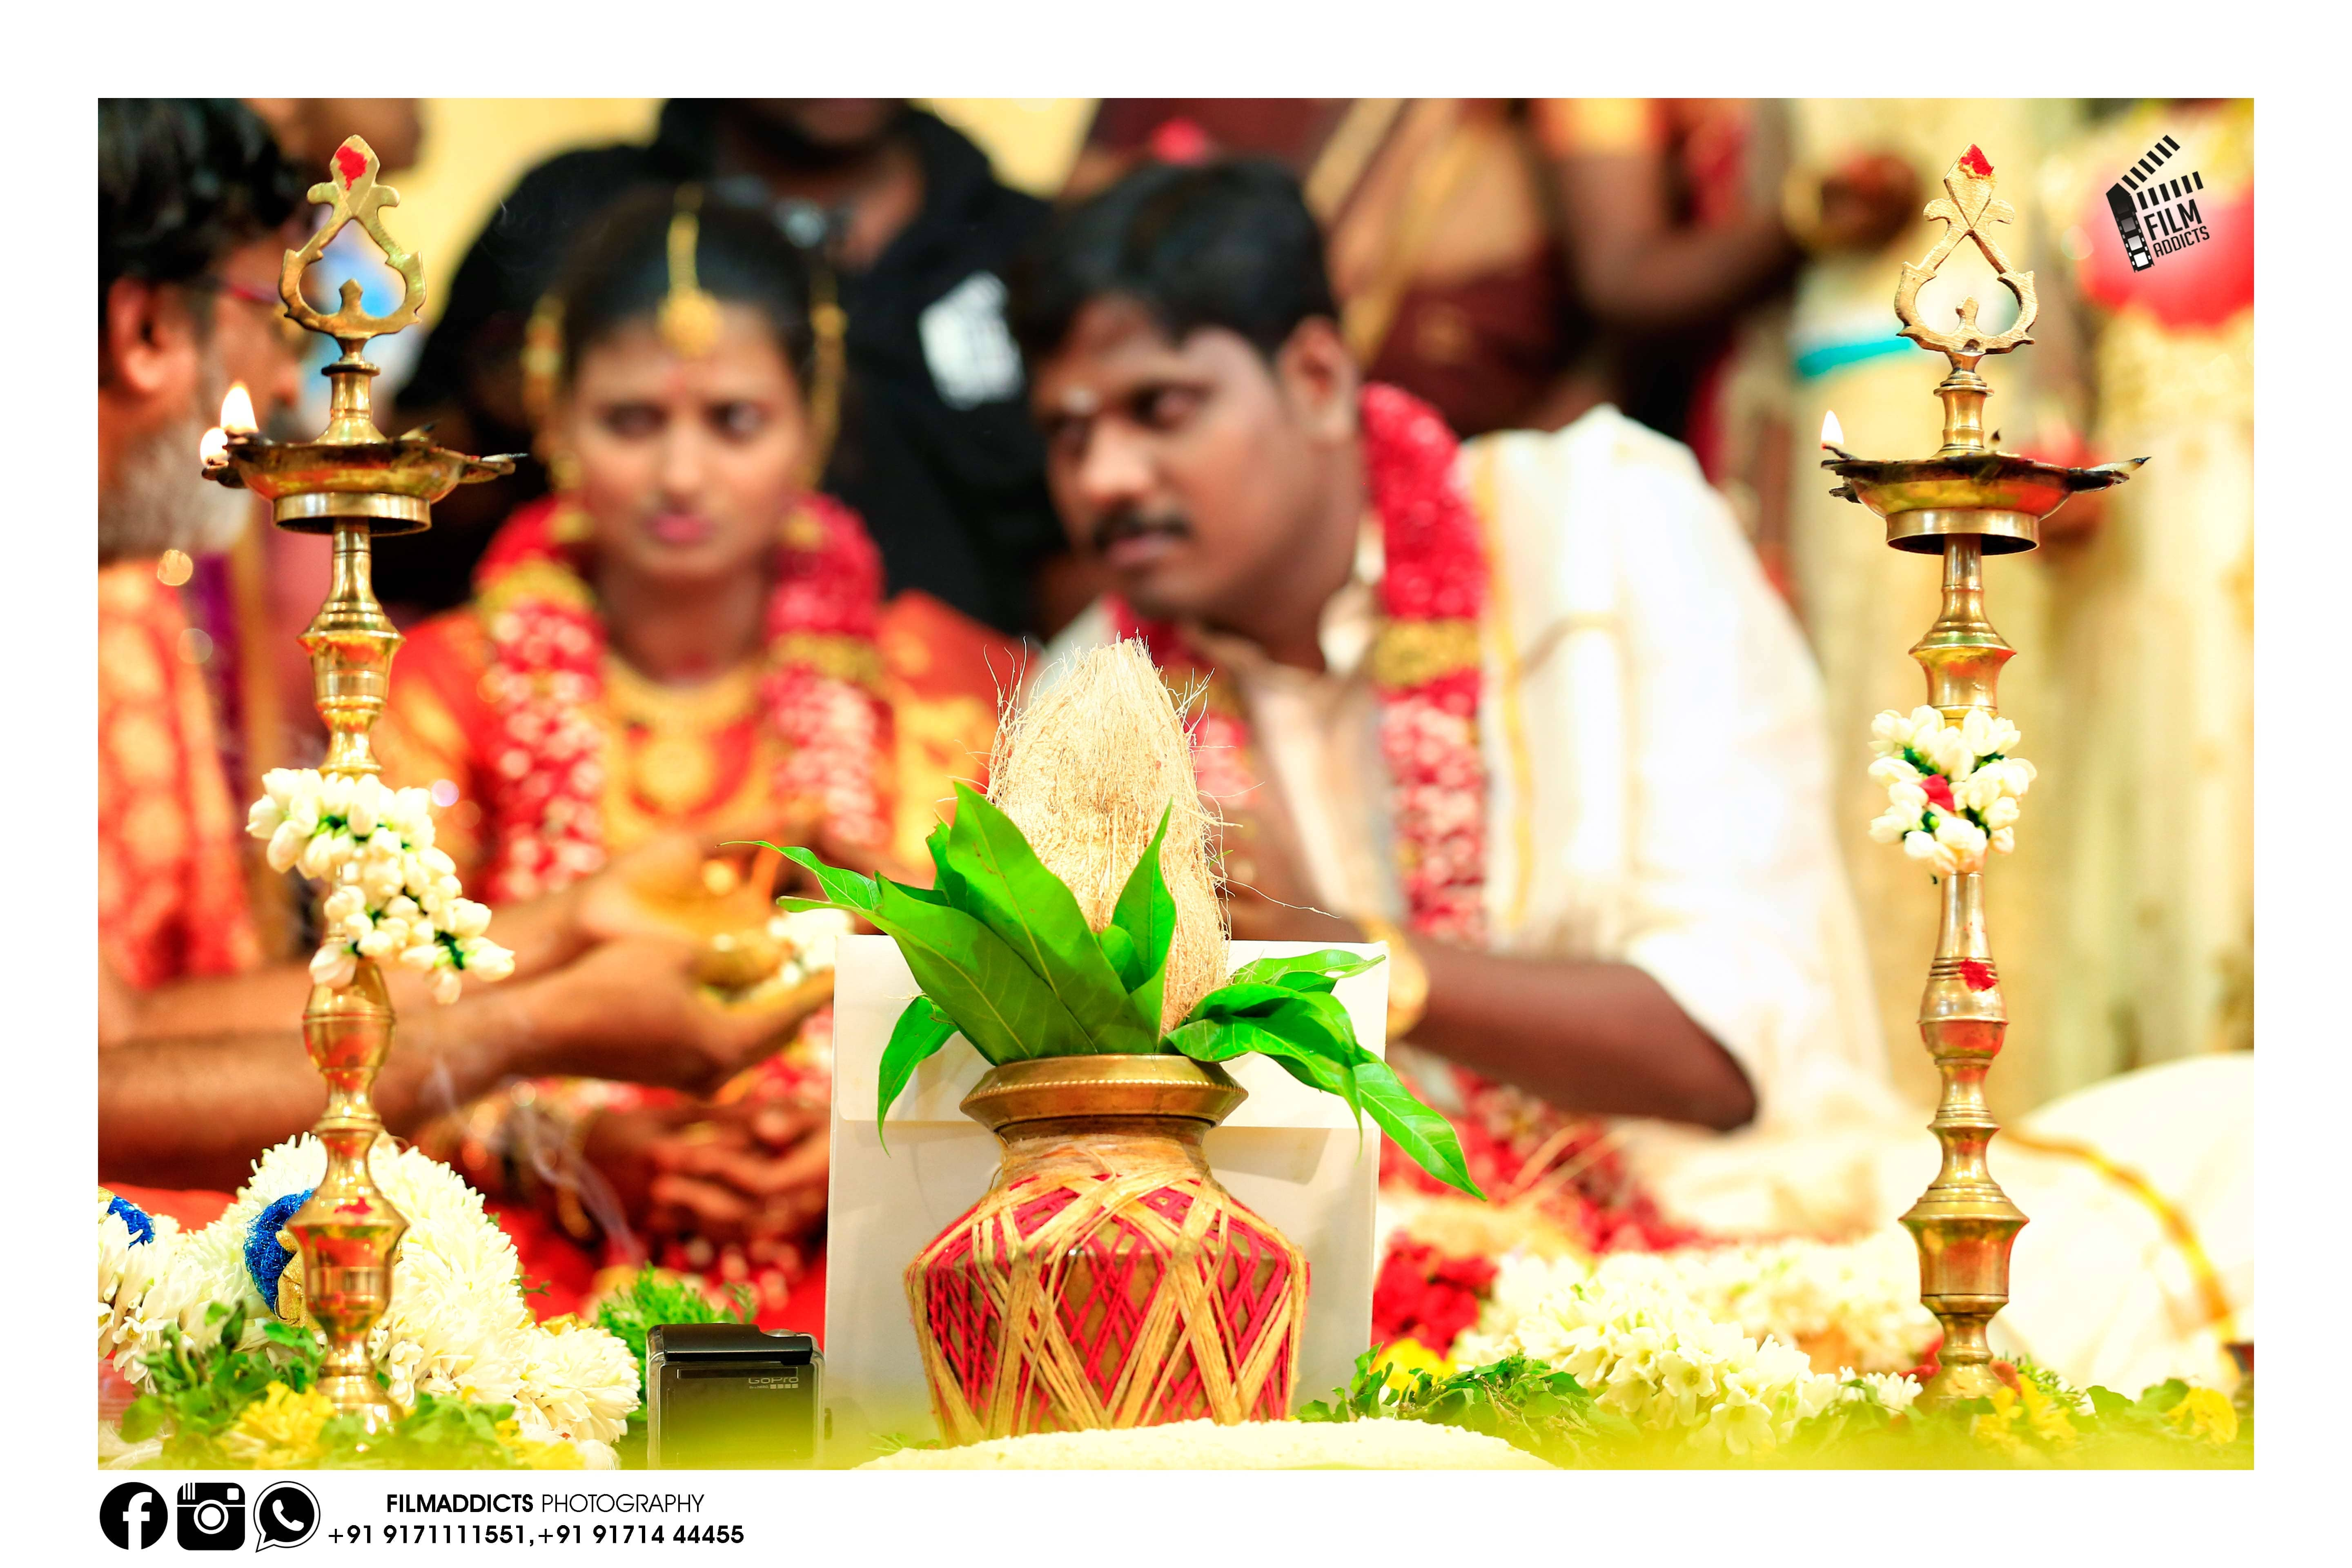 best-candid-videography professional-wedding-photographers-in-theni top-wedding-filmmakers-in-theni wedding-cinimatography-in-theni wedding-teaser-in-theni best-nadar-wedding-couples best-wedding-photographers-in-theni best-nadar-wedding-photography-in-theni candid-photographers-in-theni cine-style-wedding-videography-in-theni nadar-weding-photography-in-theni photographer-for-wedding-in-theni theni-nadar-wedding-photography theni-nadar-wedding wedding-highlights-videos-in-theni wedding-short-films-in-theni wedding-story-telling-in-theni weddings-in-cinema-style-in-theni